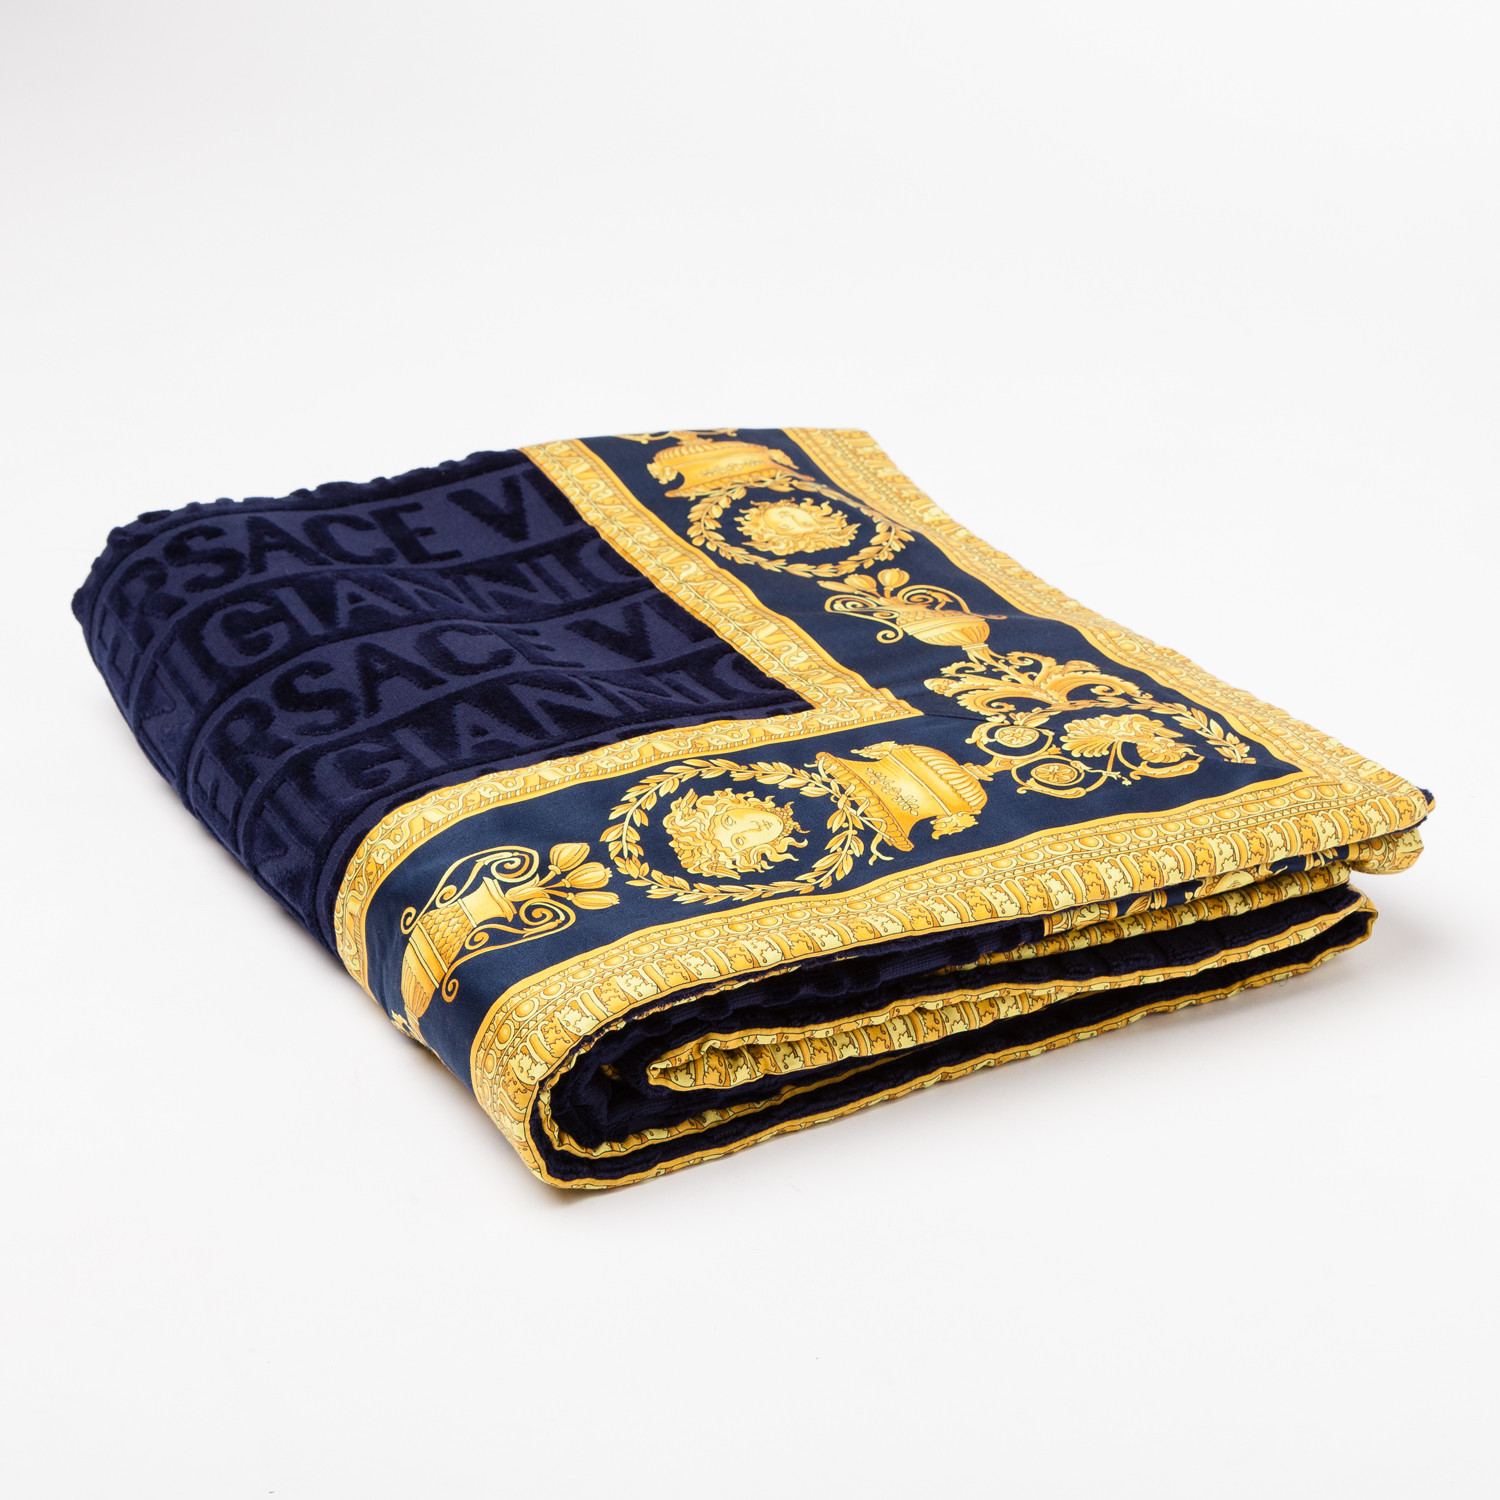 Luxury Beach Towels Intended Versace San Tropez Luxury Beach Towel Navy Escape The Cold